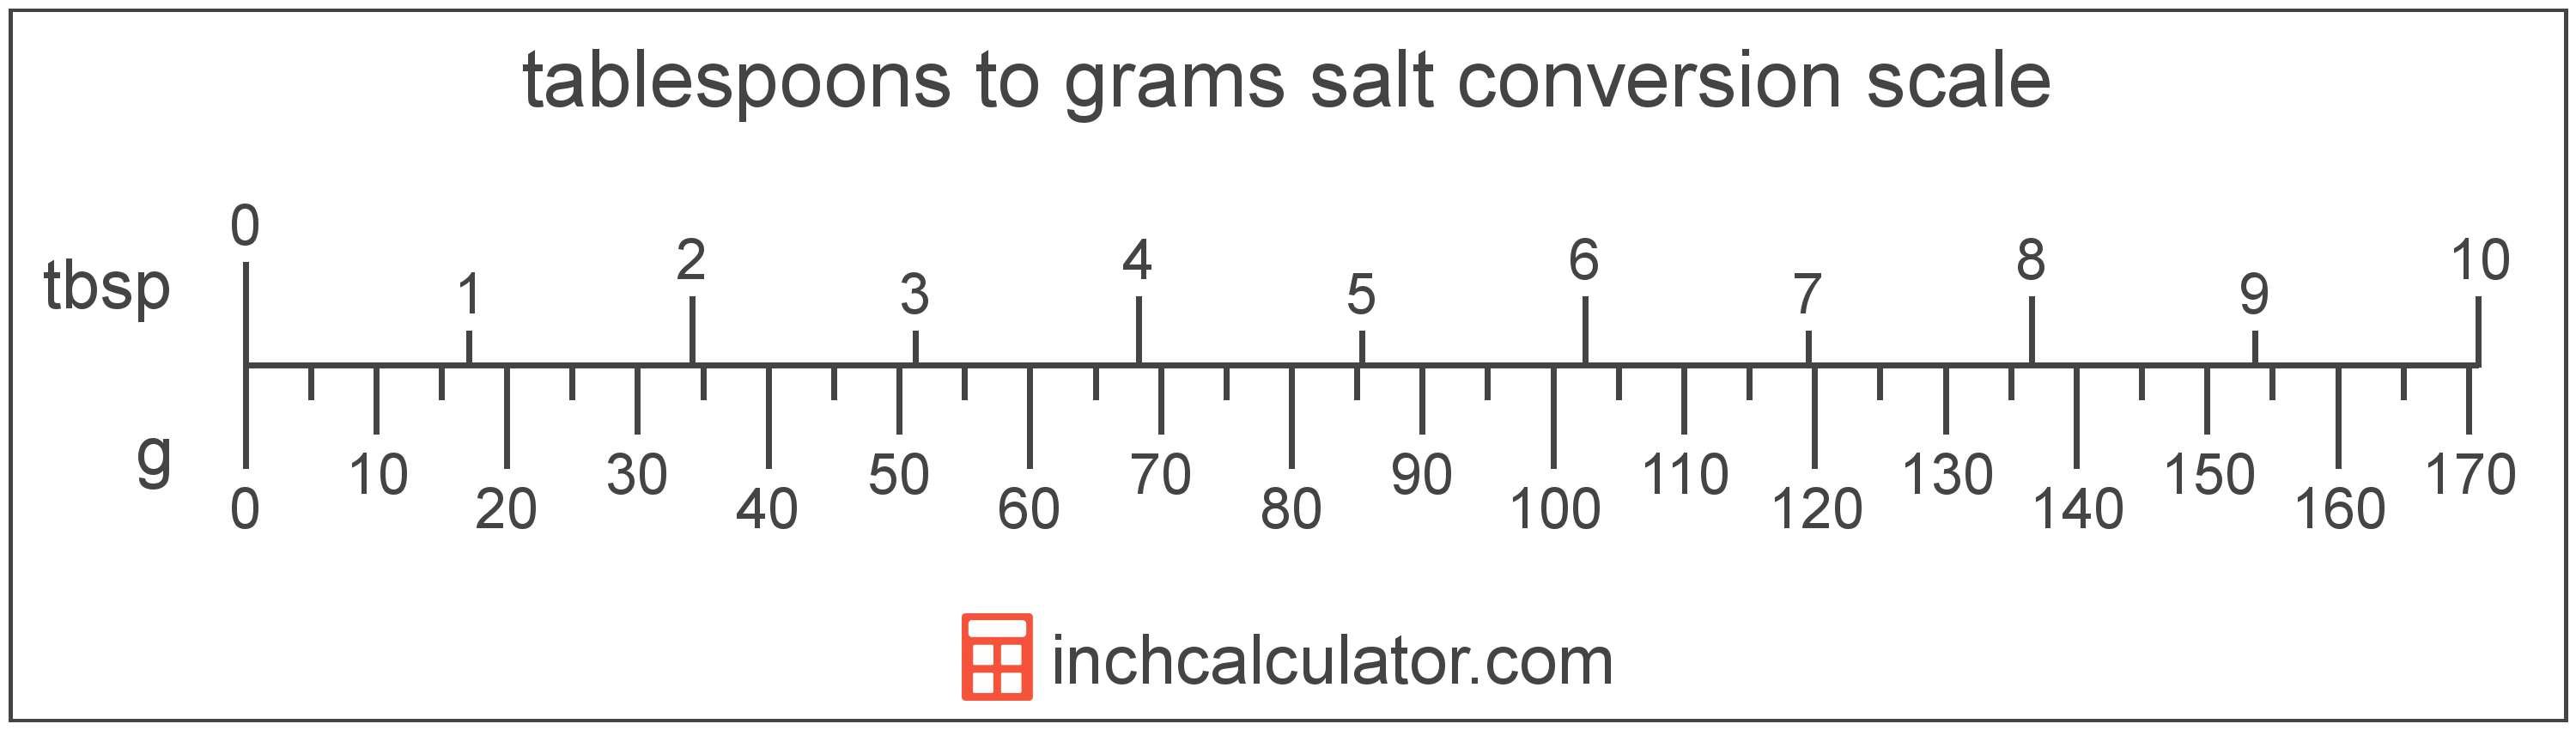 Convert Grams Of Salt To Tablespoons